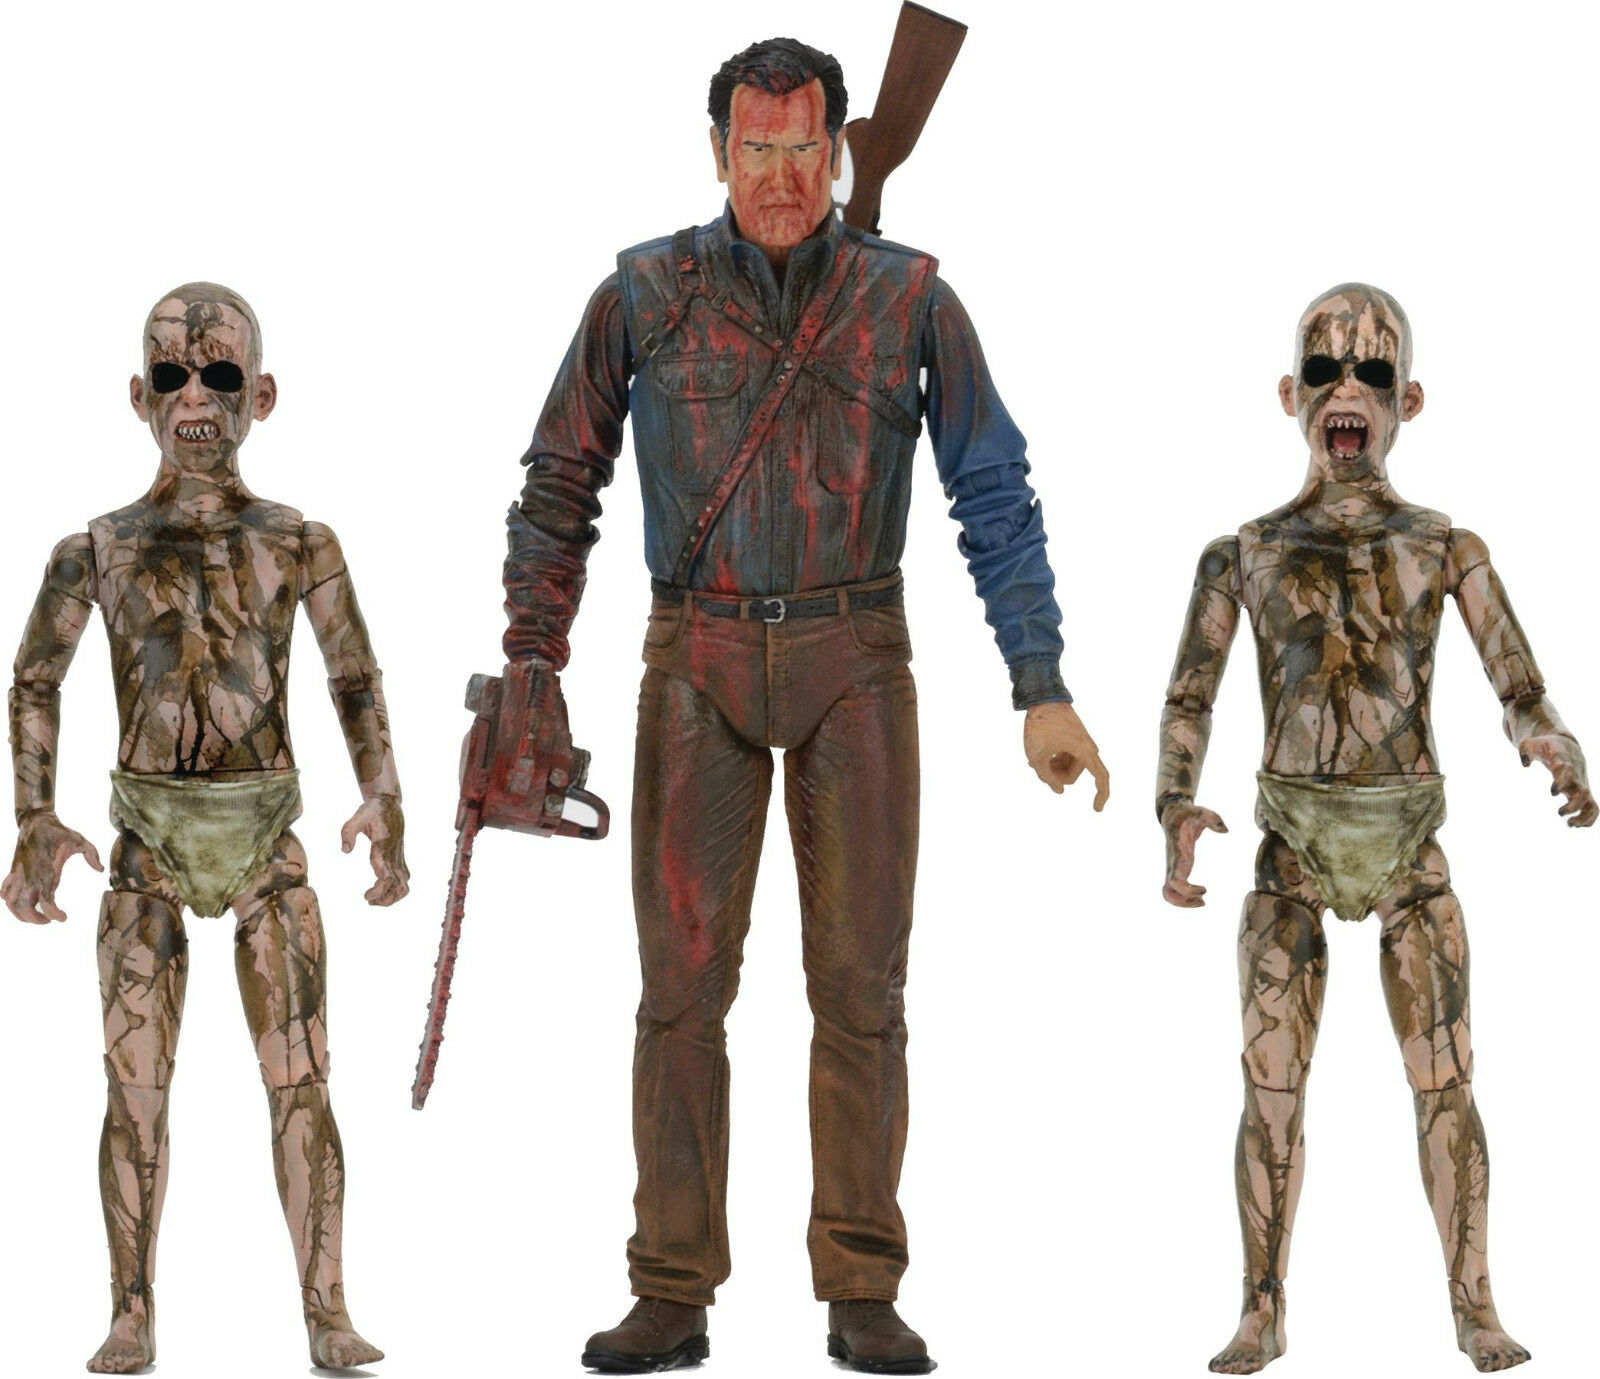 Ash vs Evil Dead BLOODY BLOODY BLOODY ASH vs DEMON SPAWNS action figure setArmy DarknessNECA 5c6a98